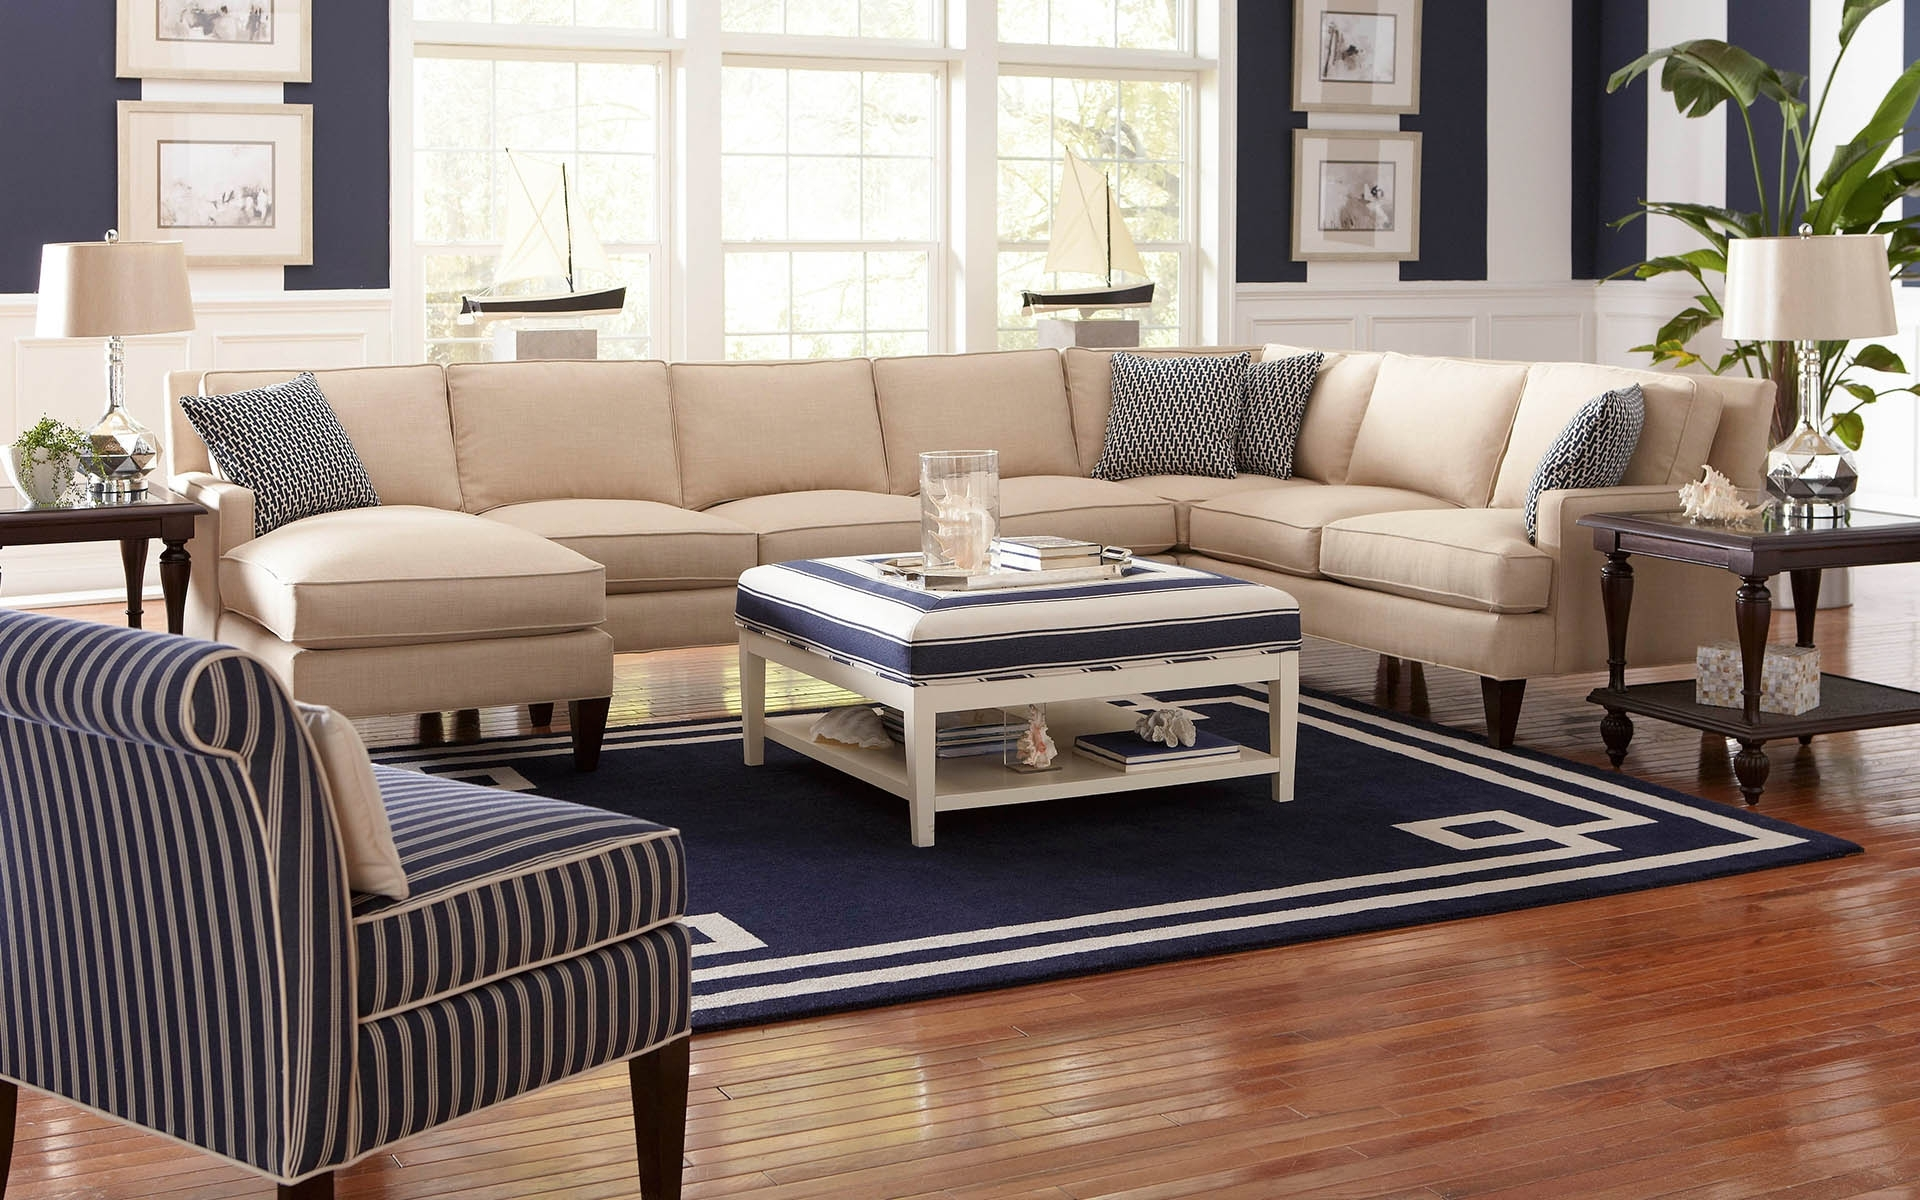 Appealing Sectional Sofas Havertys 14 For Your Mini Sectional Sofas Intended For Sectional Sofas At Havertys (Image 1 of 10)